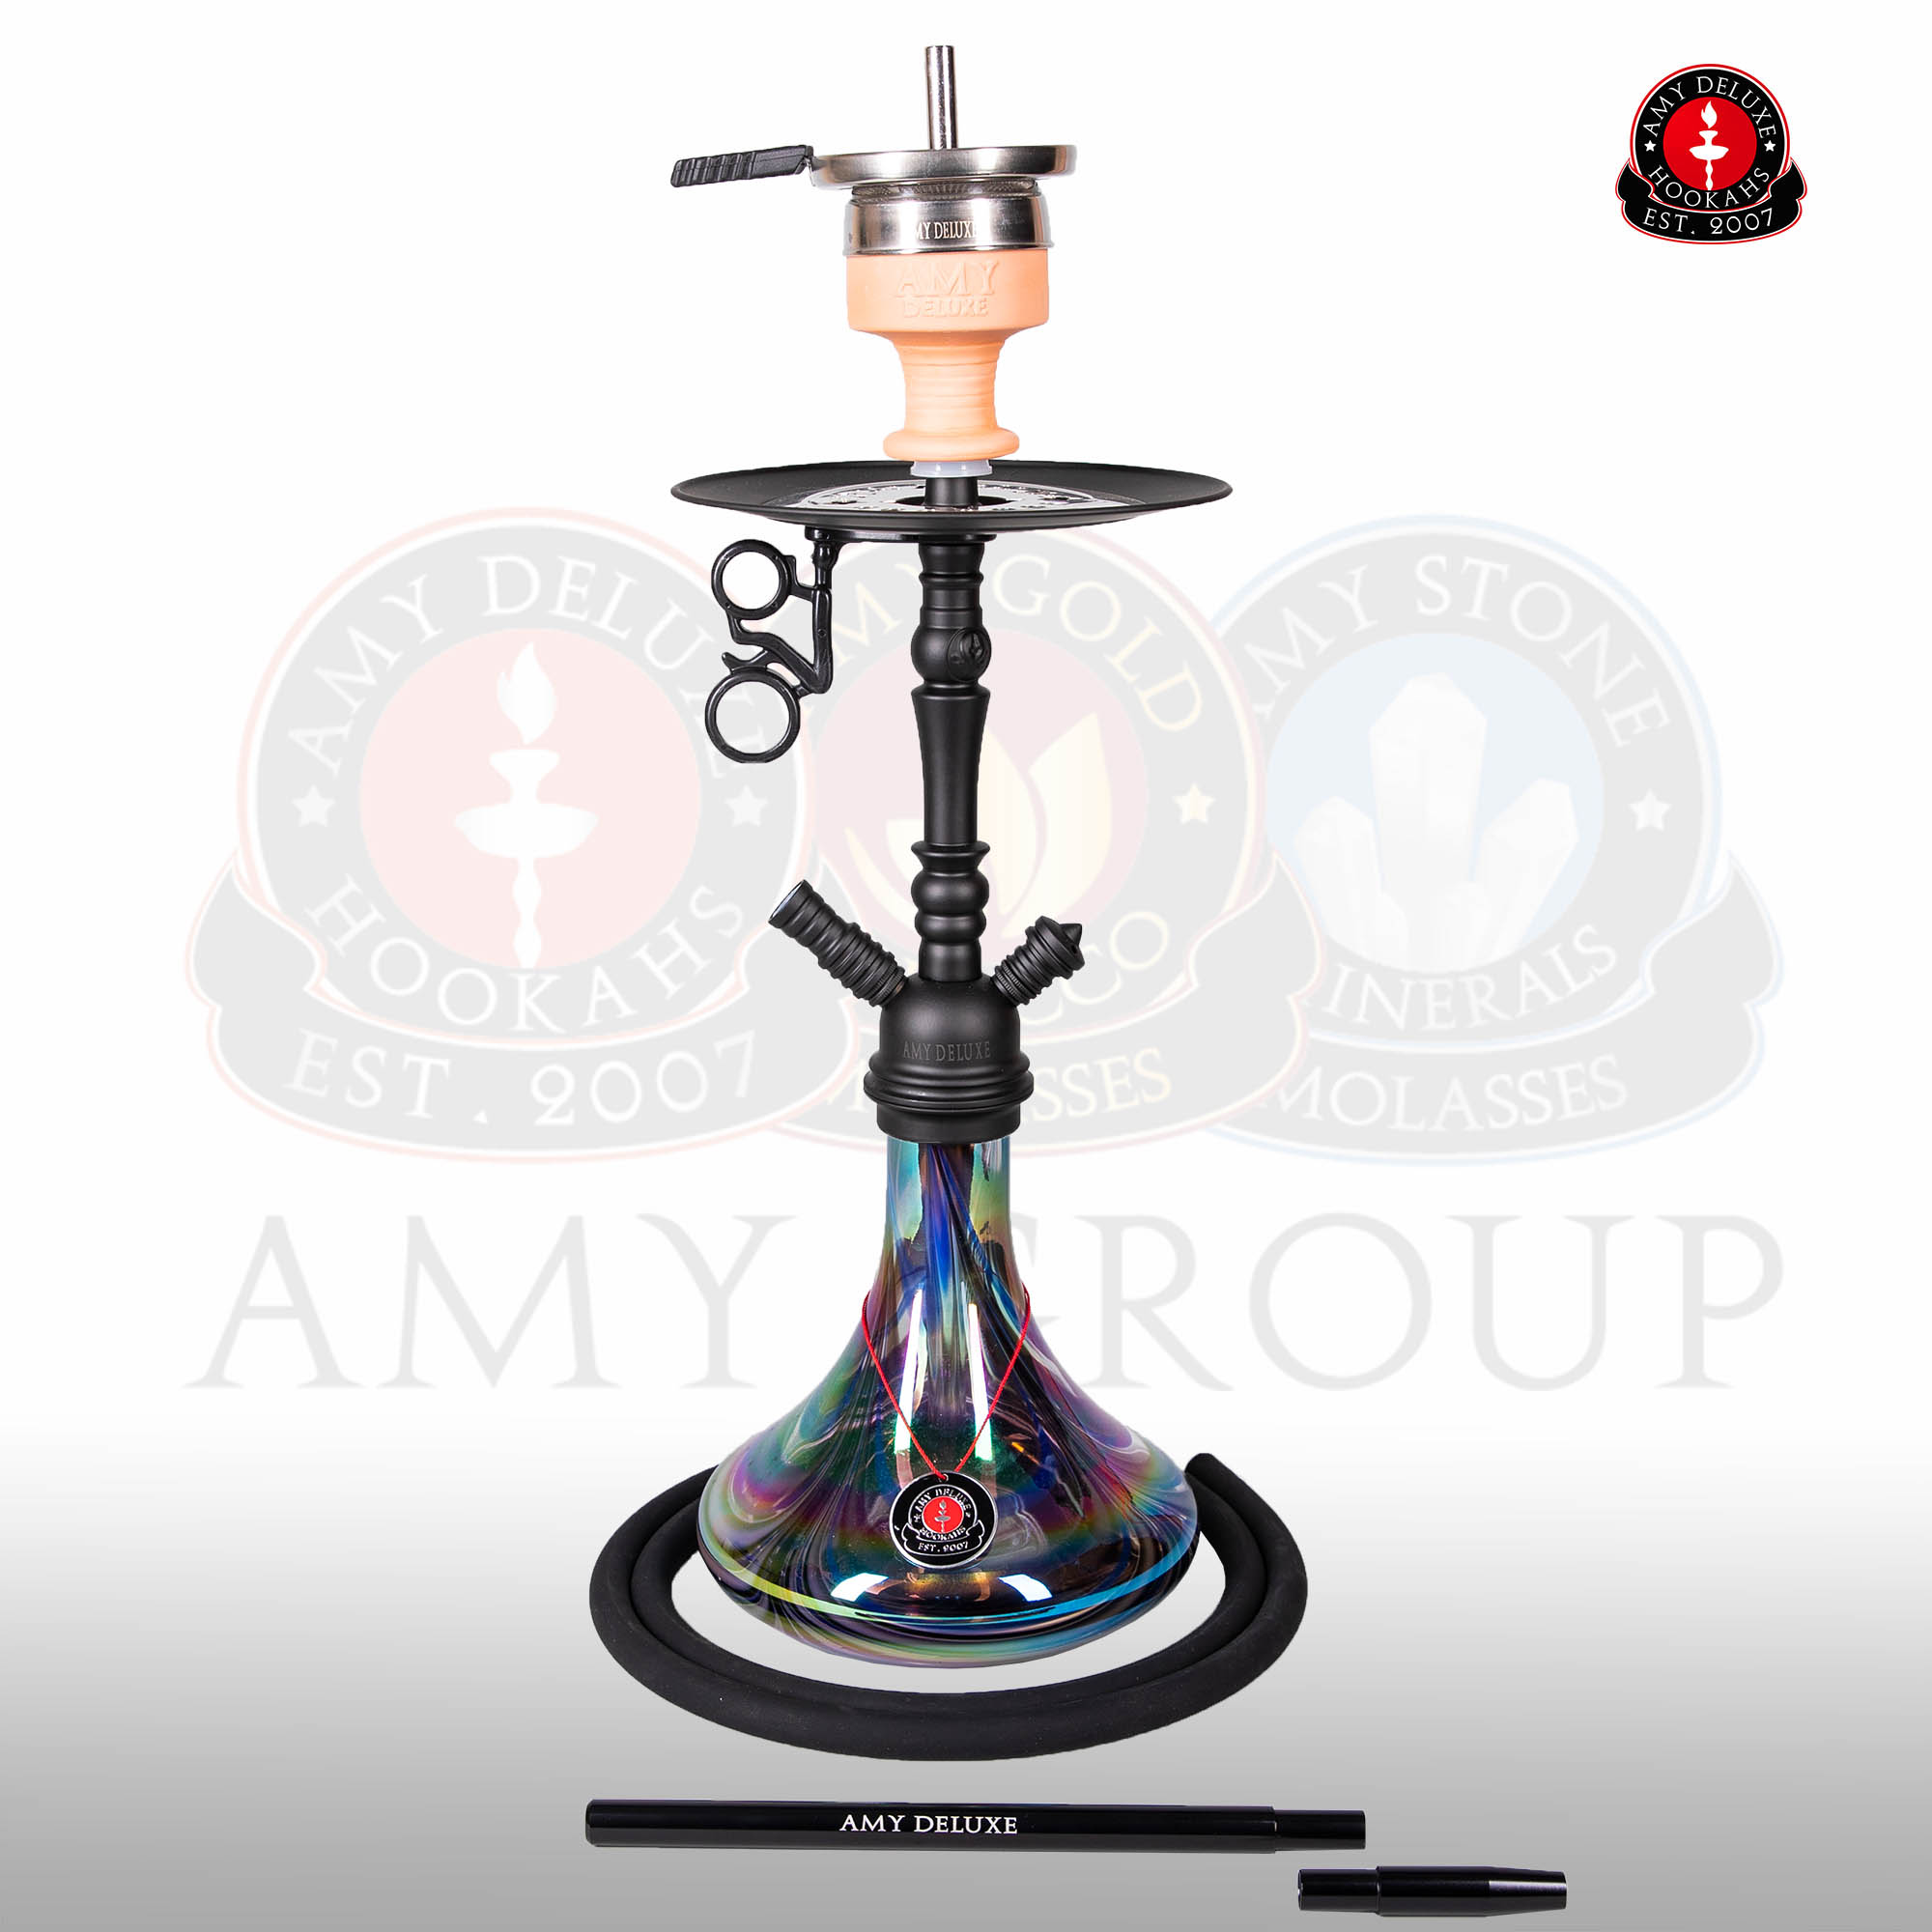 Amy deluxe middle globe 058